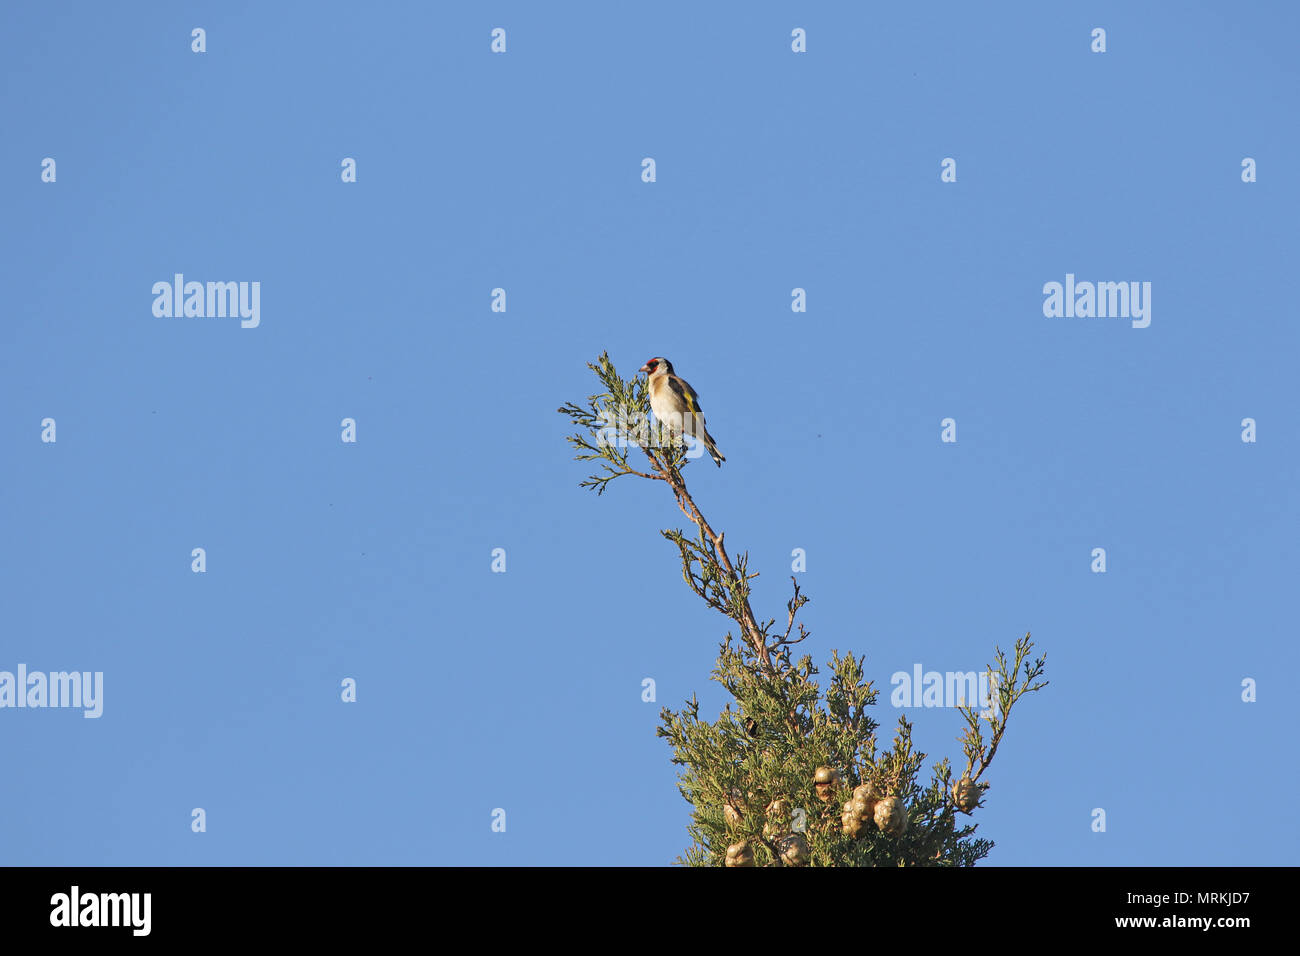 goldfinch or gold-finch bird Latin name carduelis carduelis family fringillidae on top of a cypress tree in spring in Italy - Stock Image